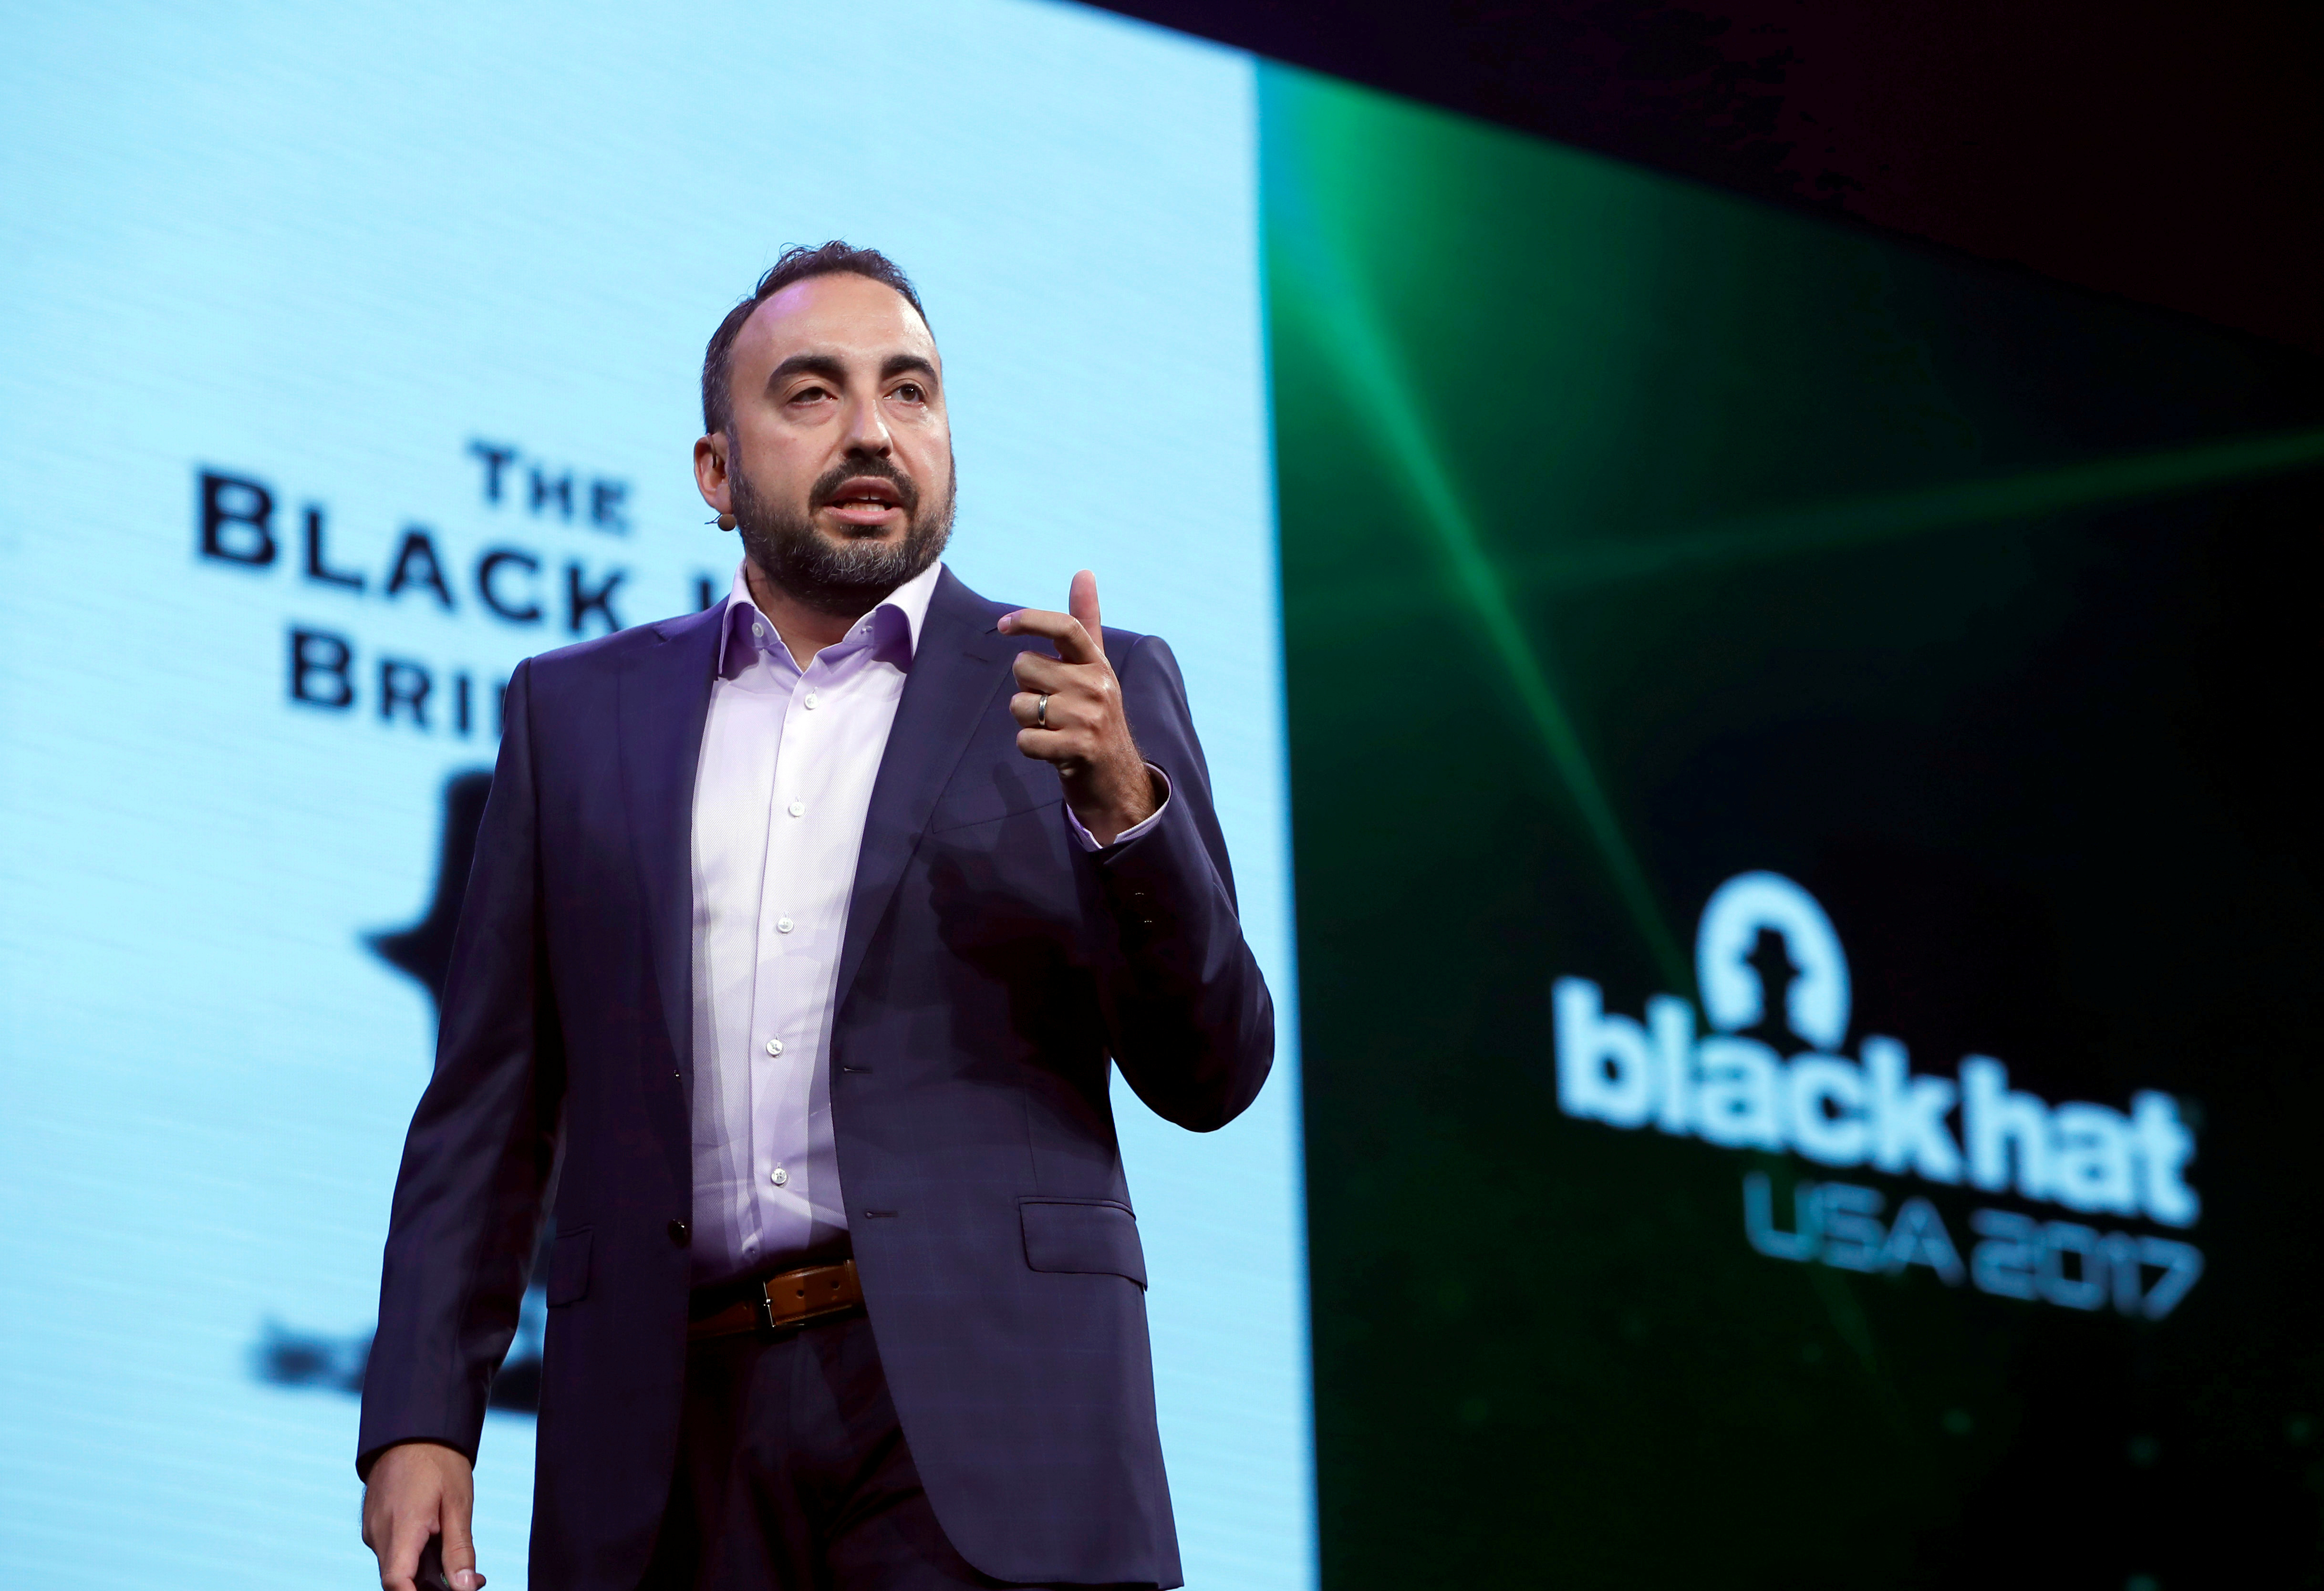 FILE PHOTO: Facebook Chief Security Officer Alex Stamos gives a keynote address during the Black Hat information security conference in Las Vegas, Nevada, U.S. July 26, 2017. REUTERS/Steve Marcus